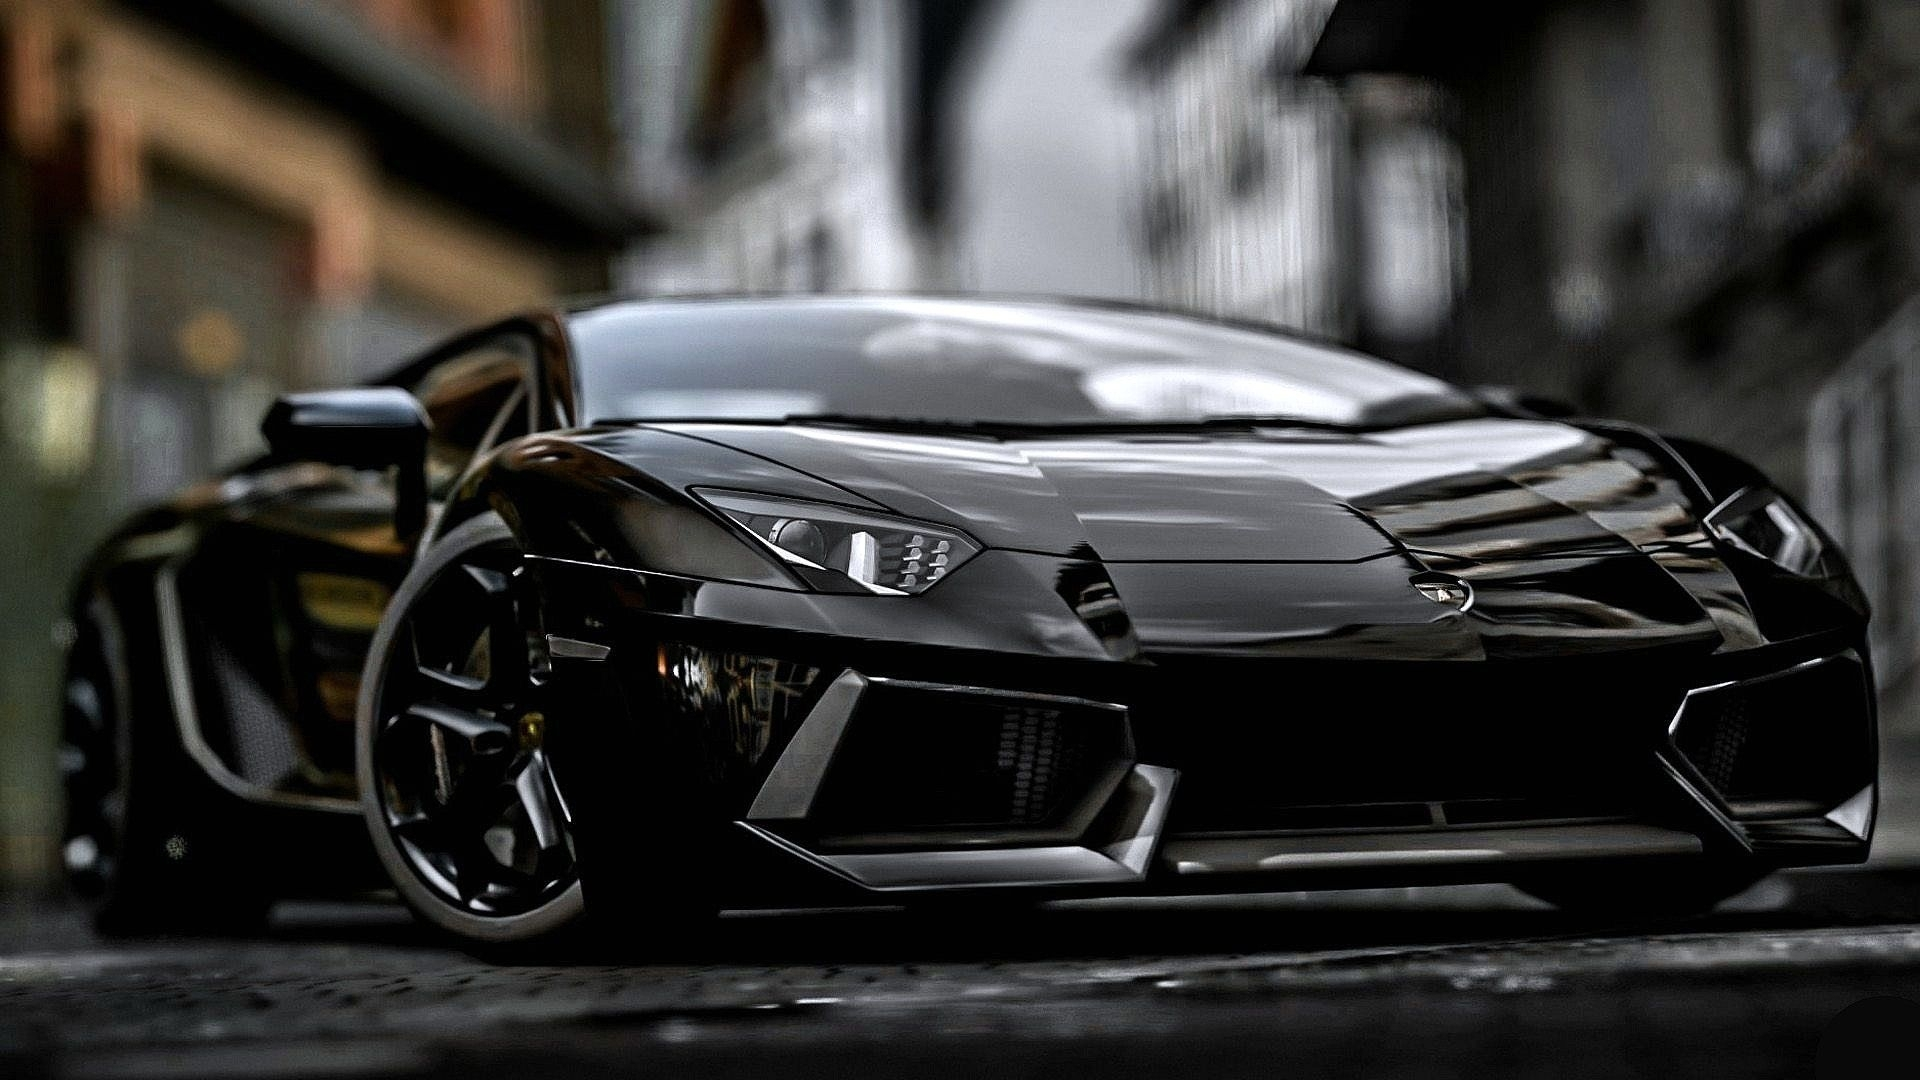 black lamborghini aventador wallpaper hd 1080p www.packair